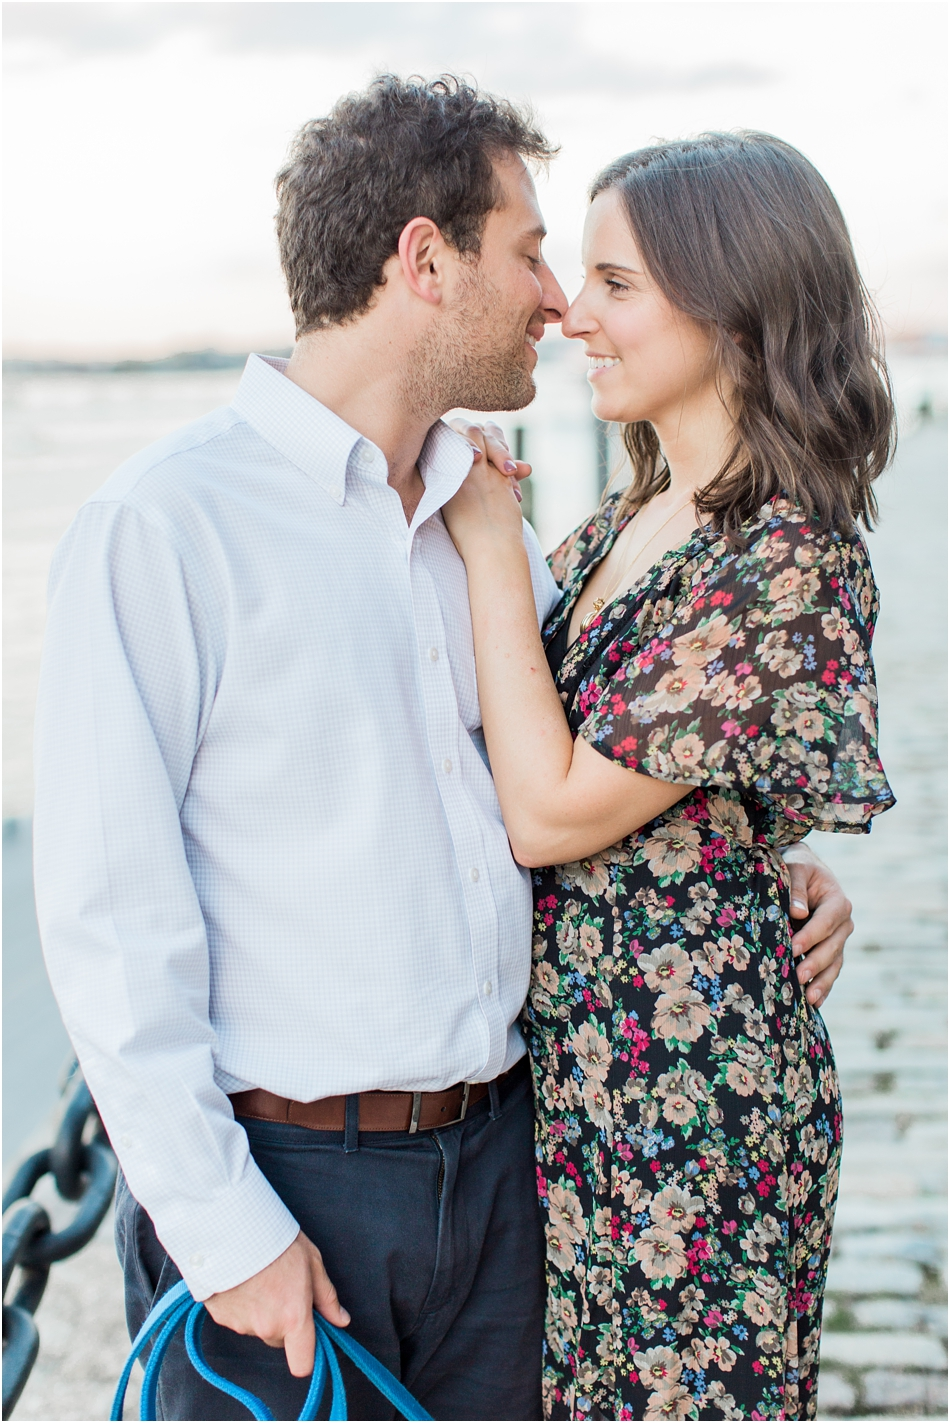 fort_point_seaport_engagement_jenna_mike_cape_cod_boston_new_england_wedding_photographer_Meredith_Jane_Photography_photo_2692.jpg